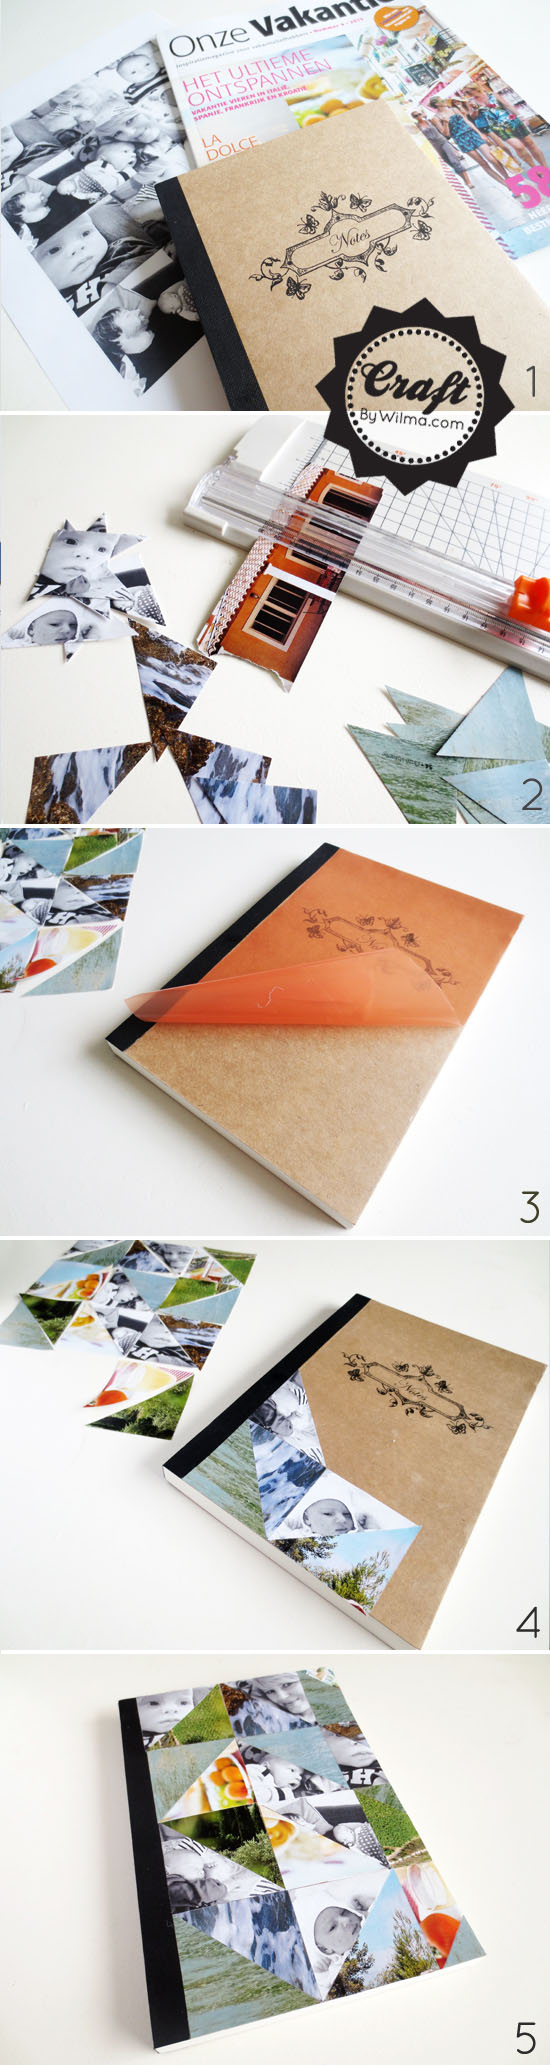 DIY notebook with a triangle photo cover